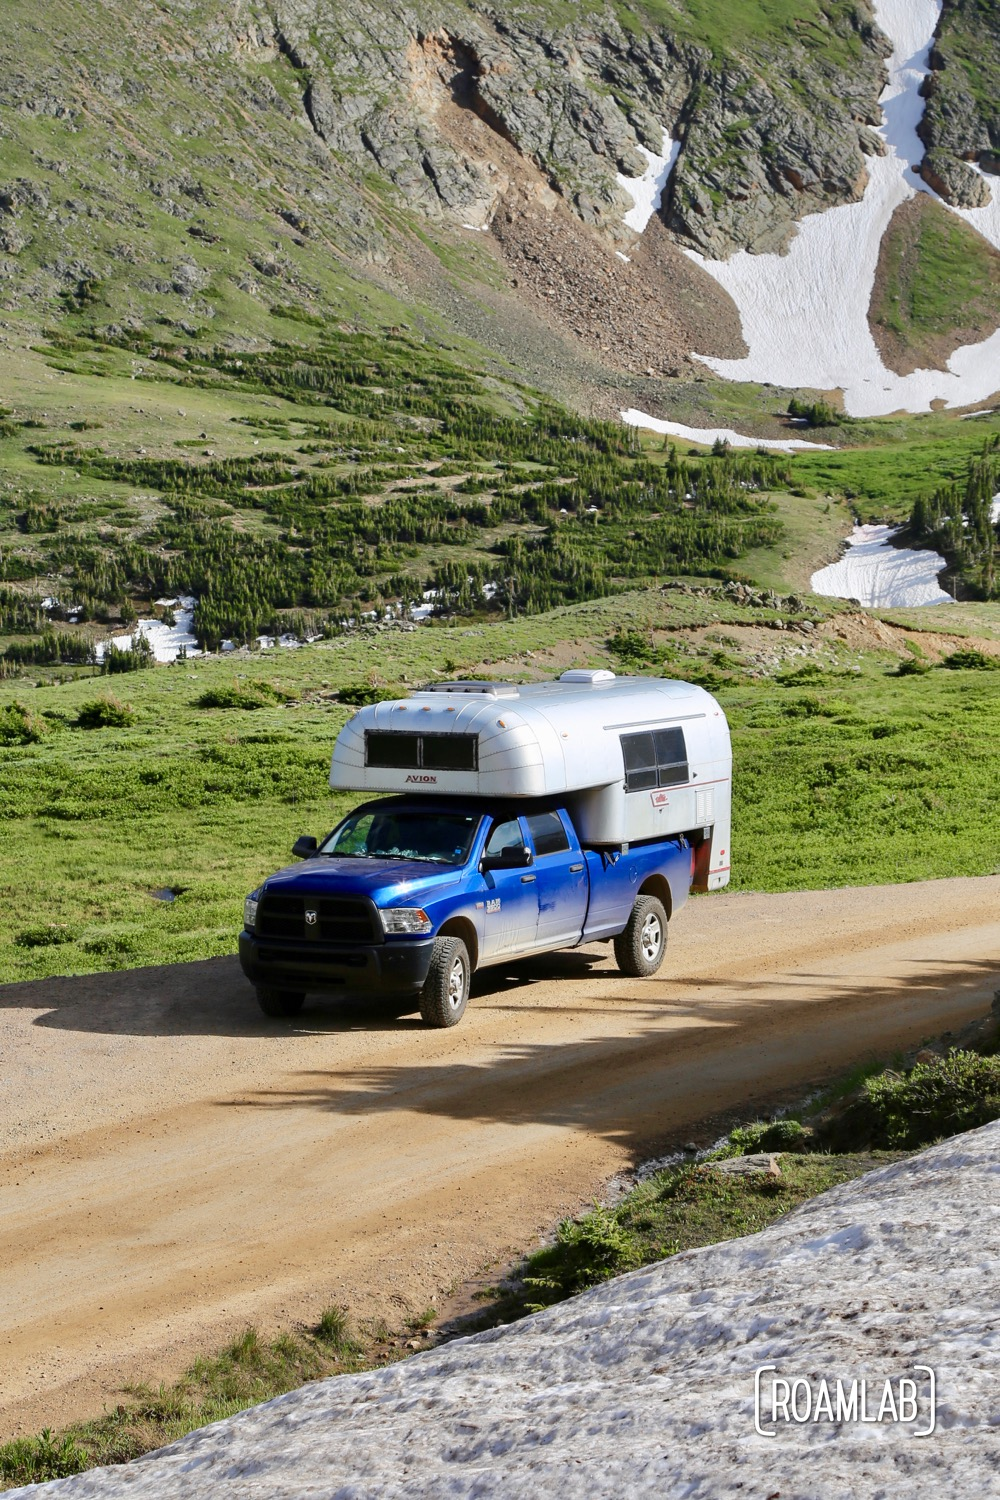 1970 Avion C11 Truck Camper driving among the glaciers on Old Fall River Road in Rocky Mountains National Park